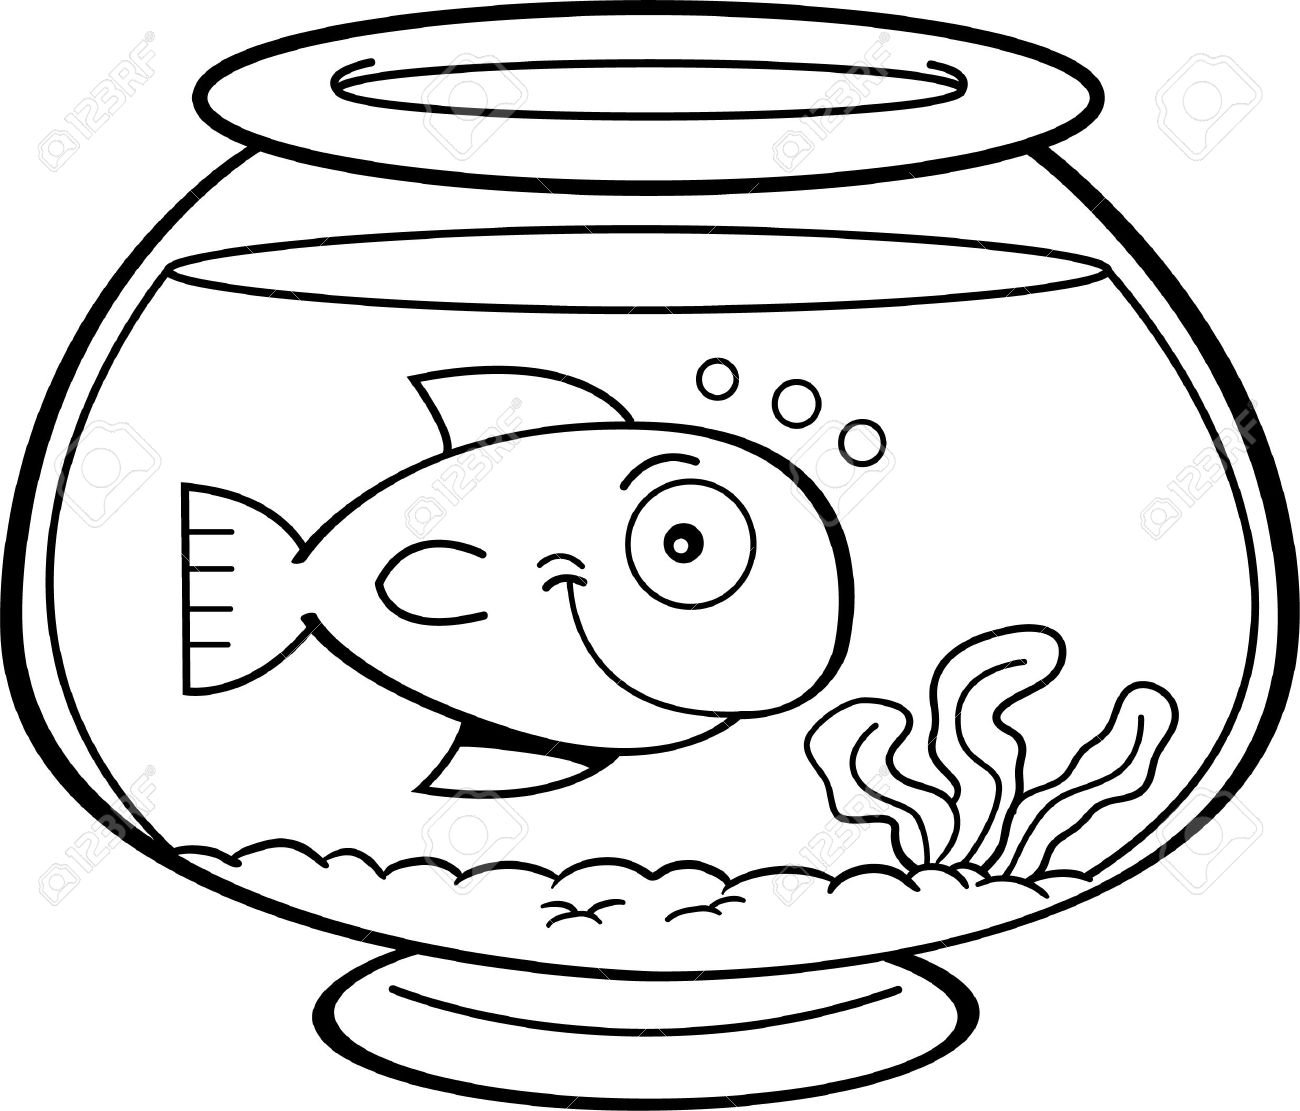 Bowl Clipart Black And White Free Download Best Bowl Clipart Black